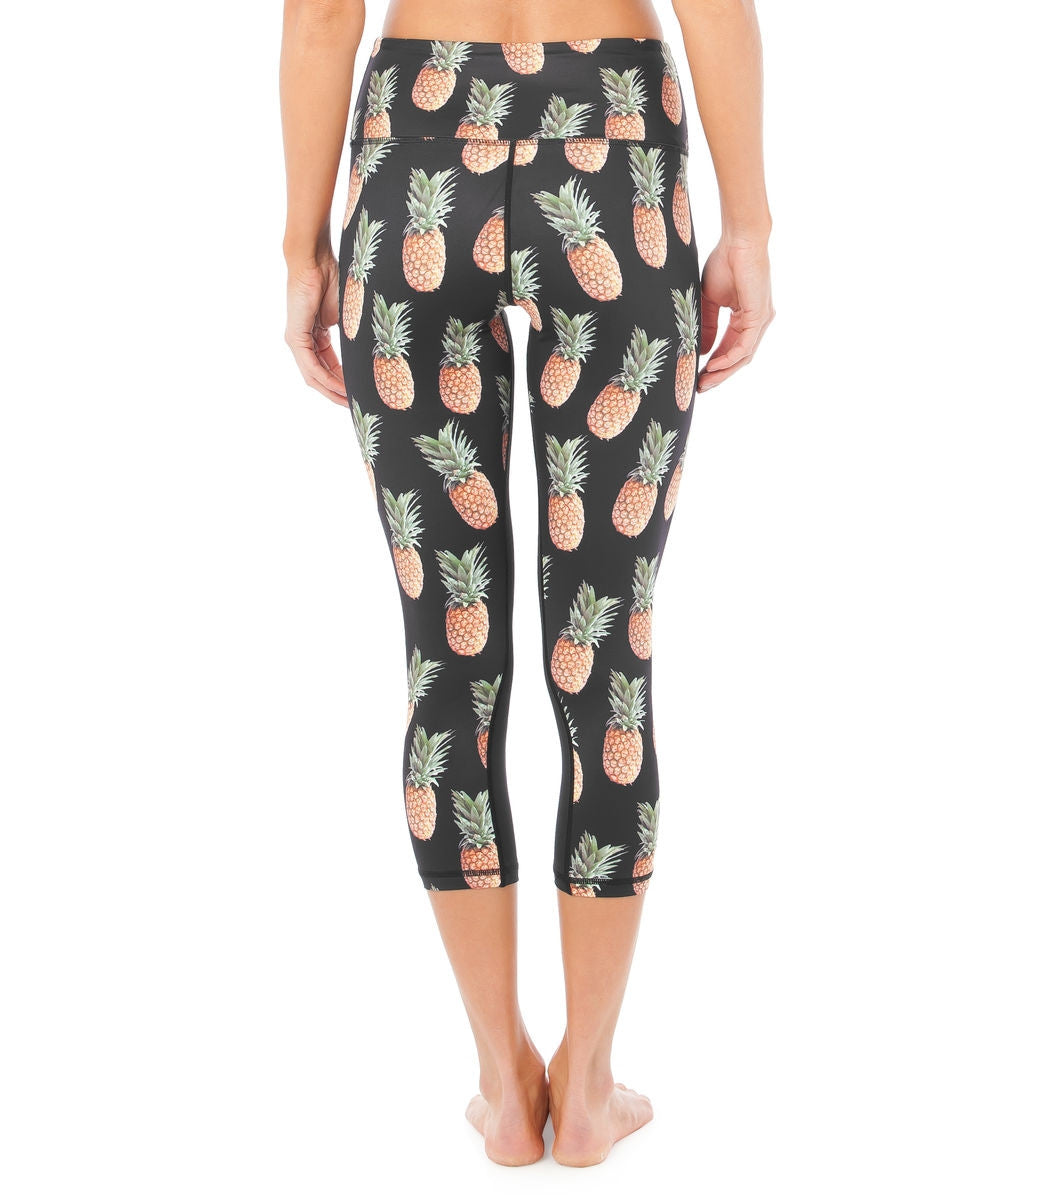 L'urv Pineapple juice 3/4 Tights - myactivestyle.no